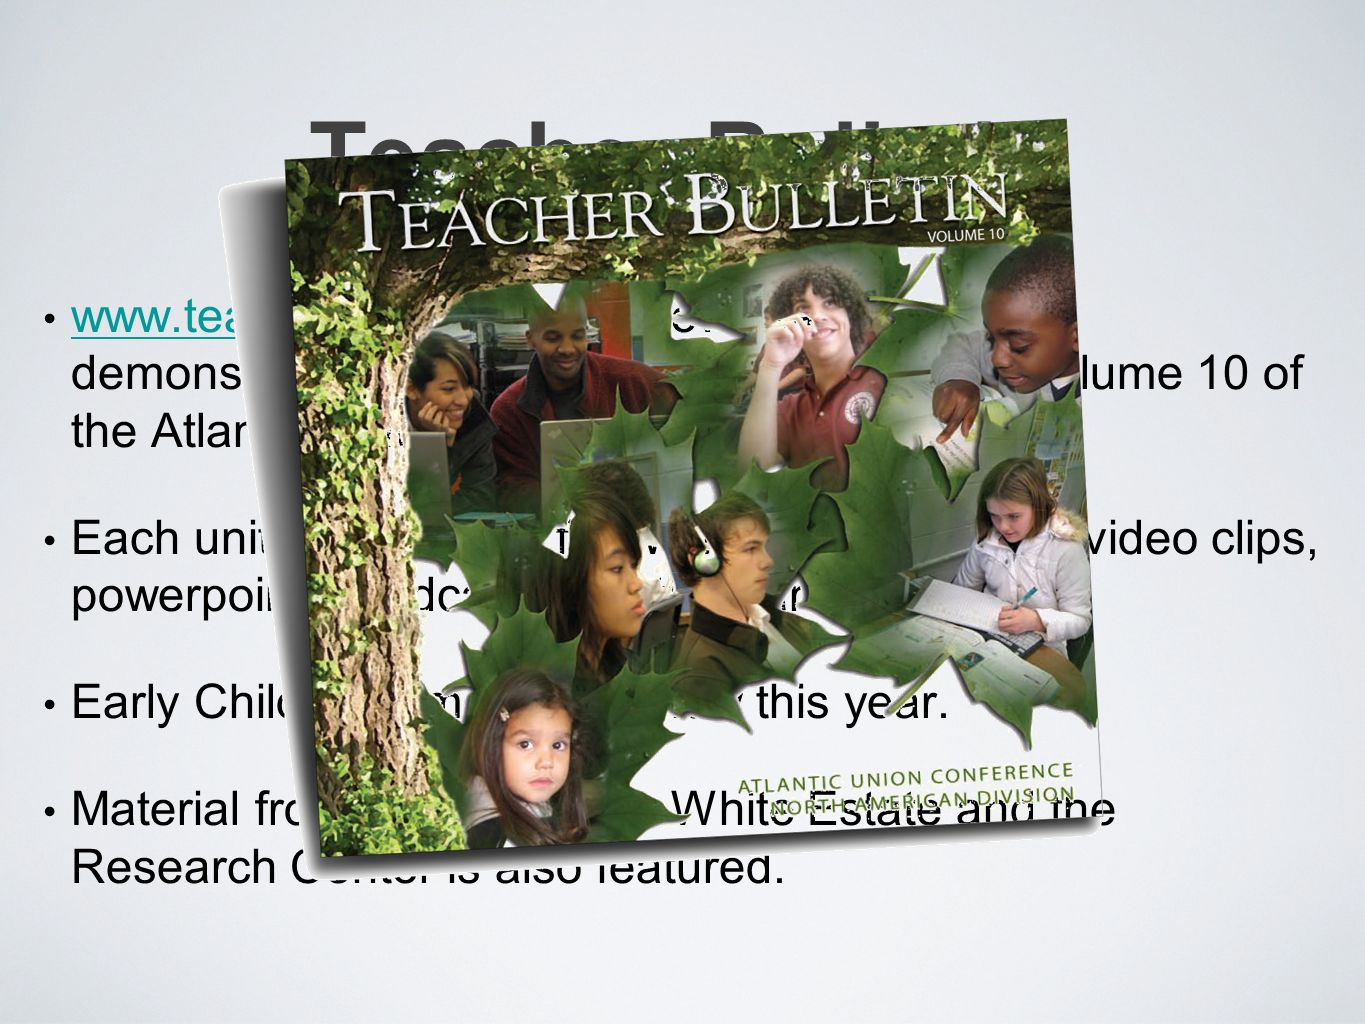 Teacher Bulletin www.teacherbulletin.org is now ready and was demonstrated by Martha Ban, editor.